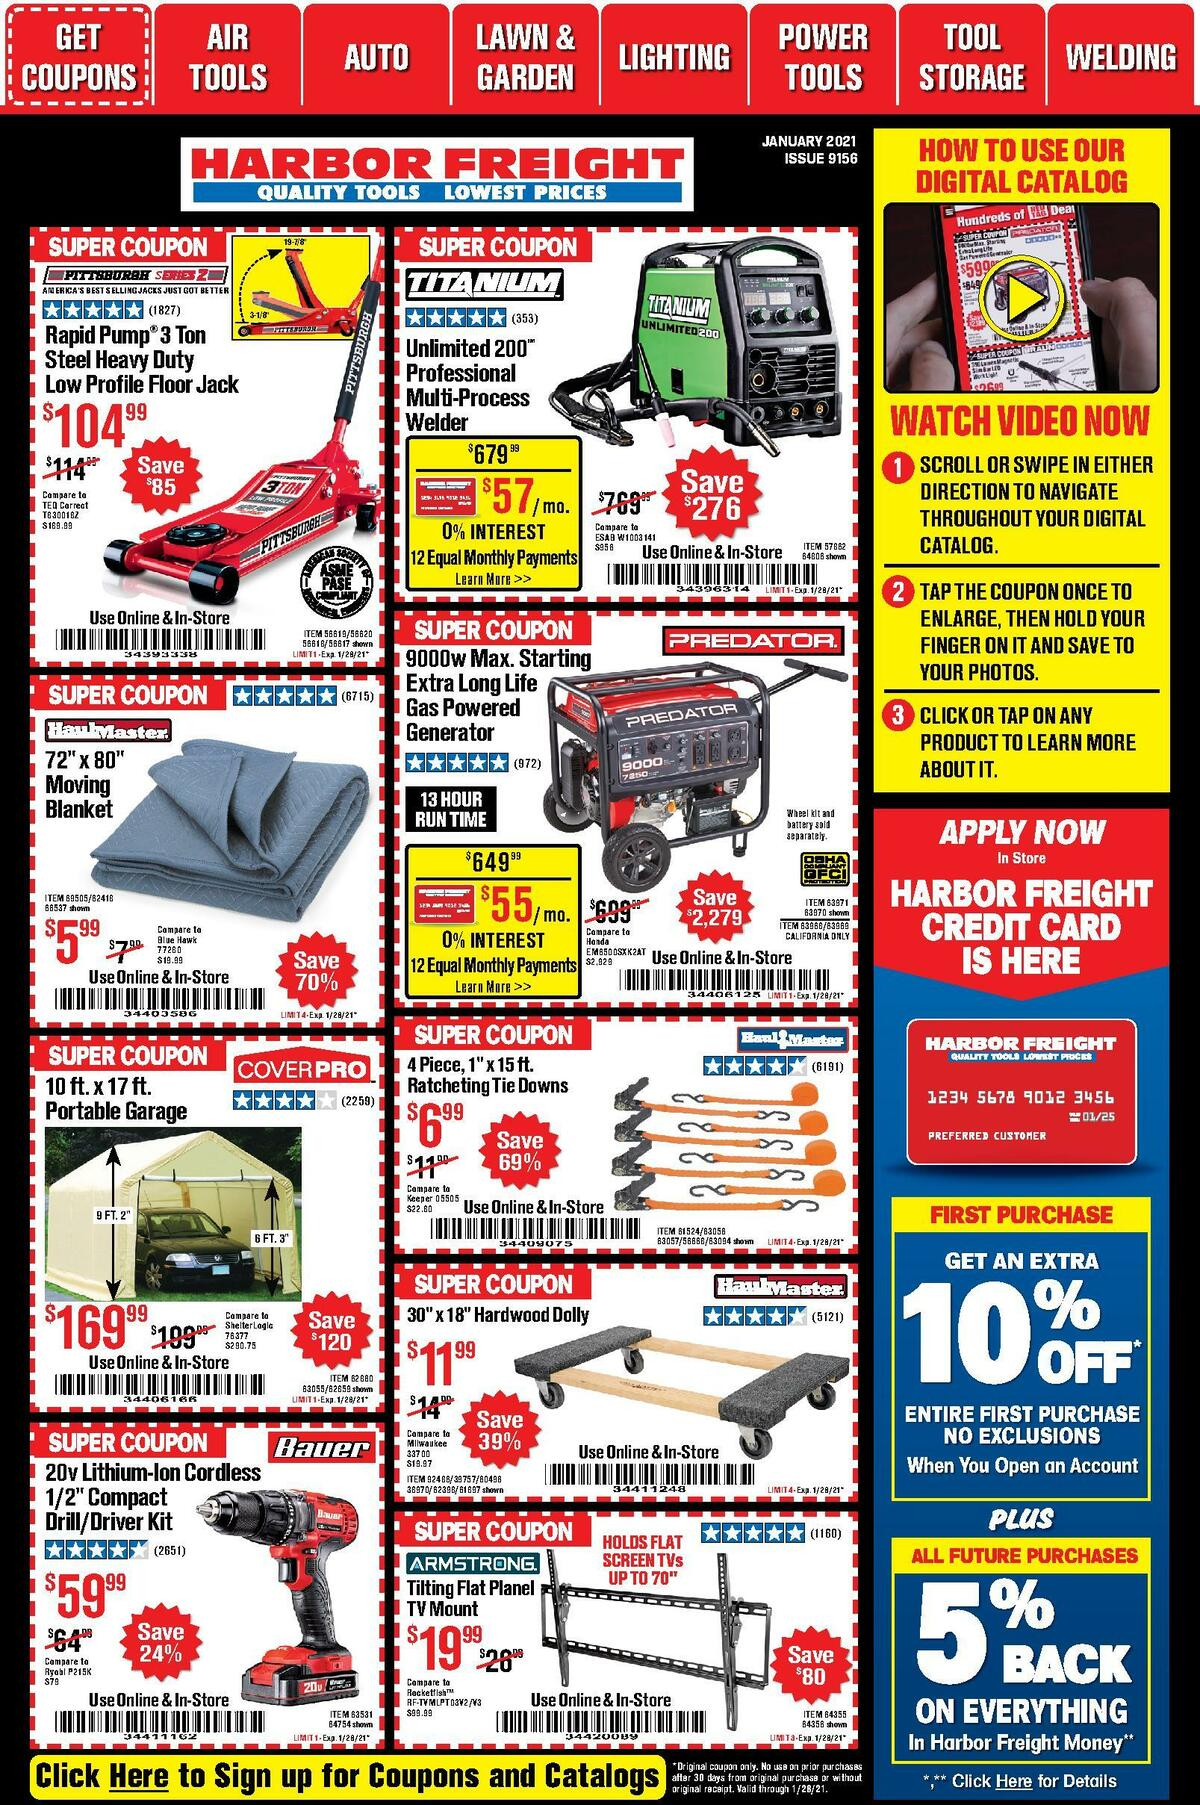 Harbor Freight Tools Weekly Ad from January 1